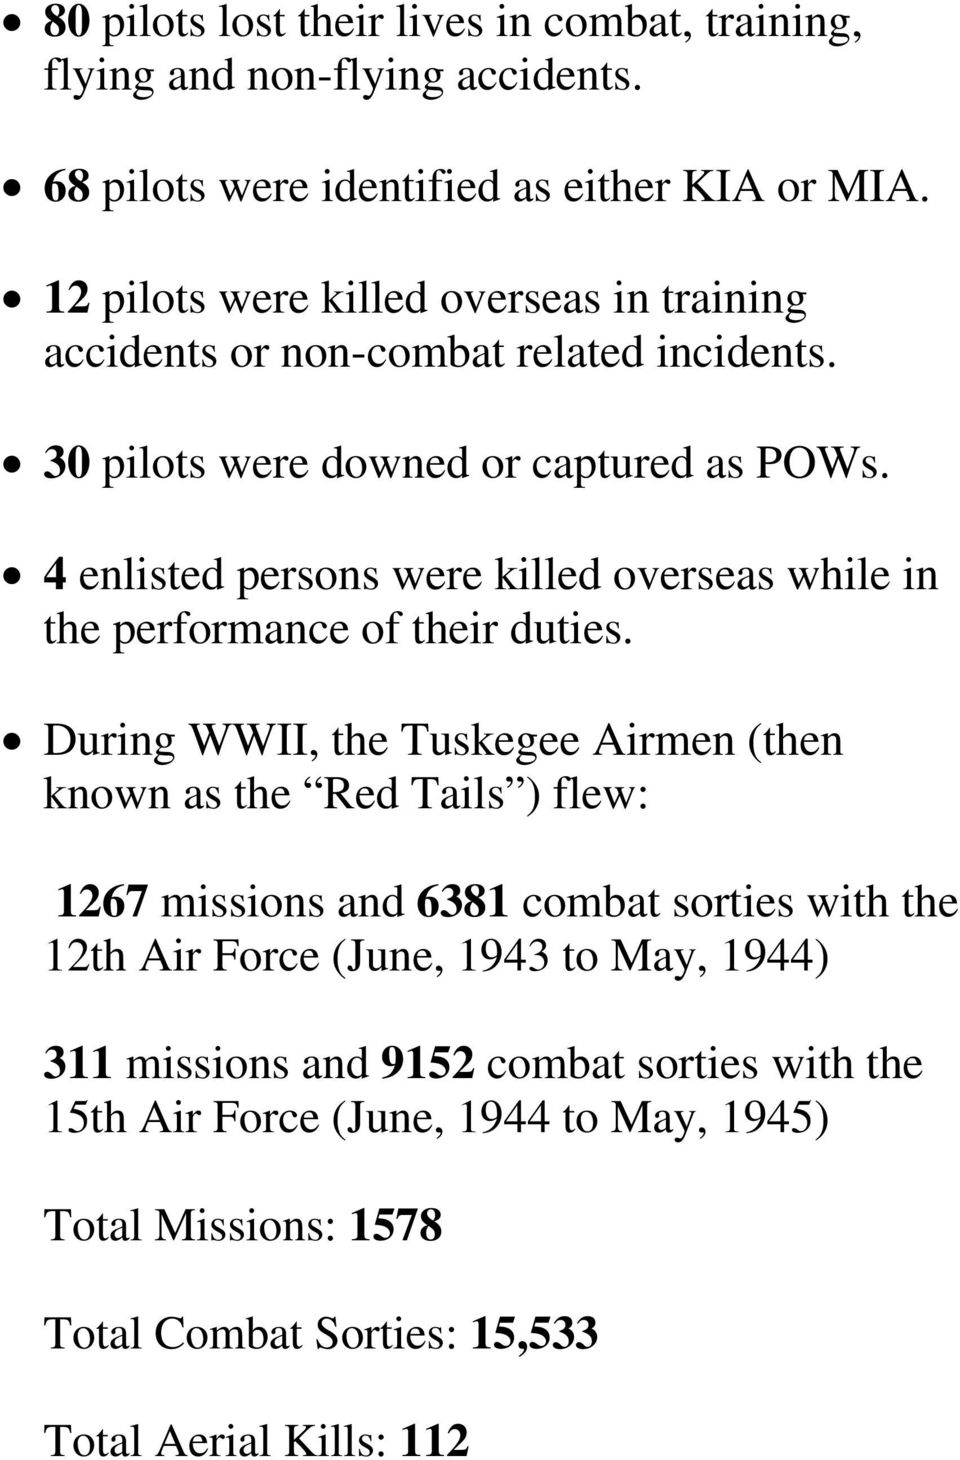 4 enlisted persons were killed overseas while in the performance of their duties.